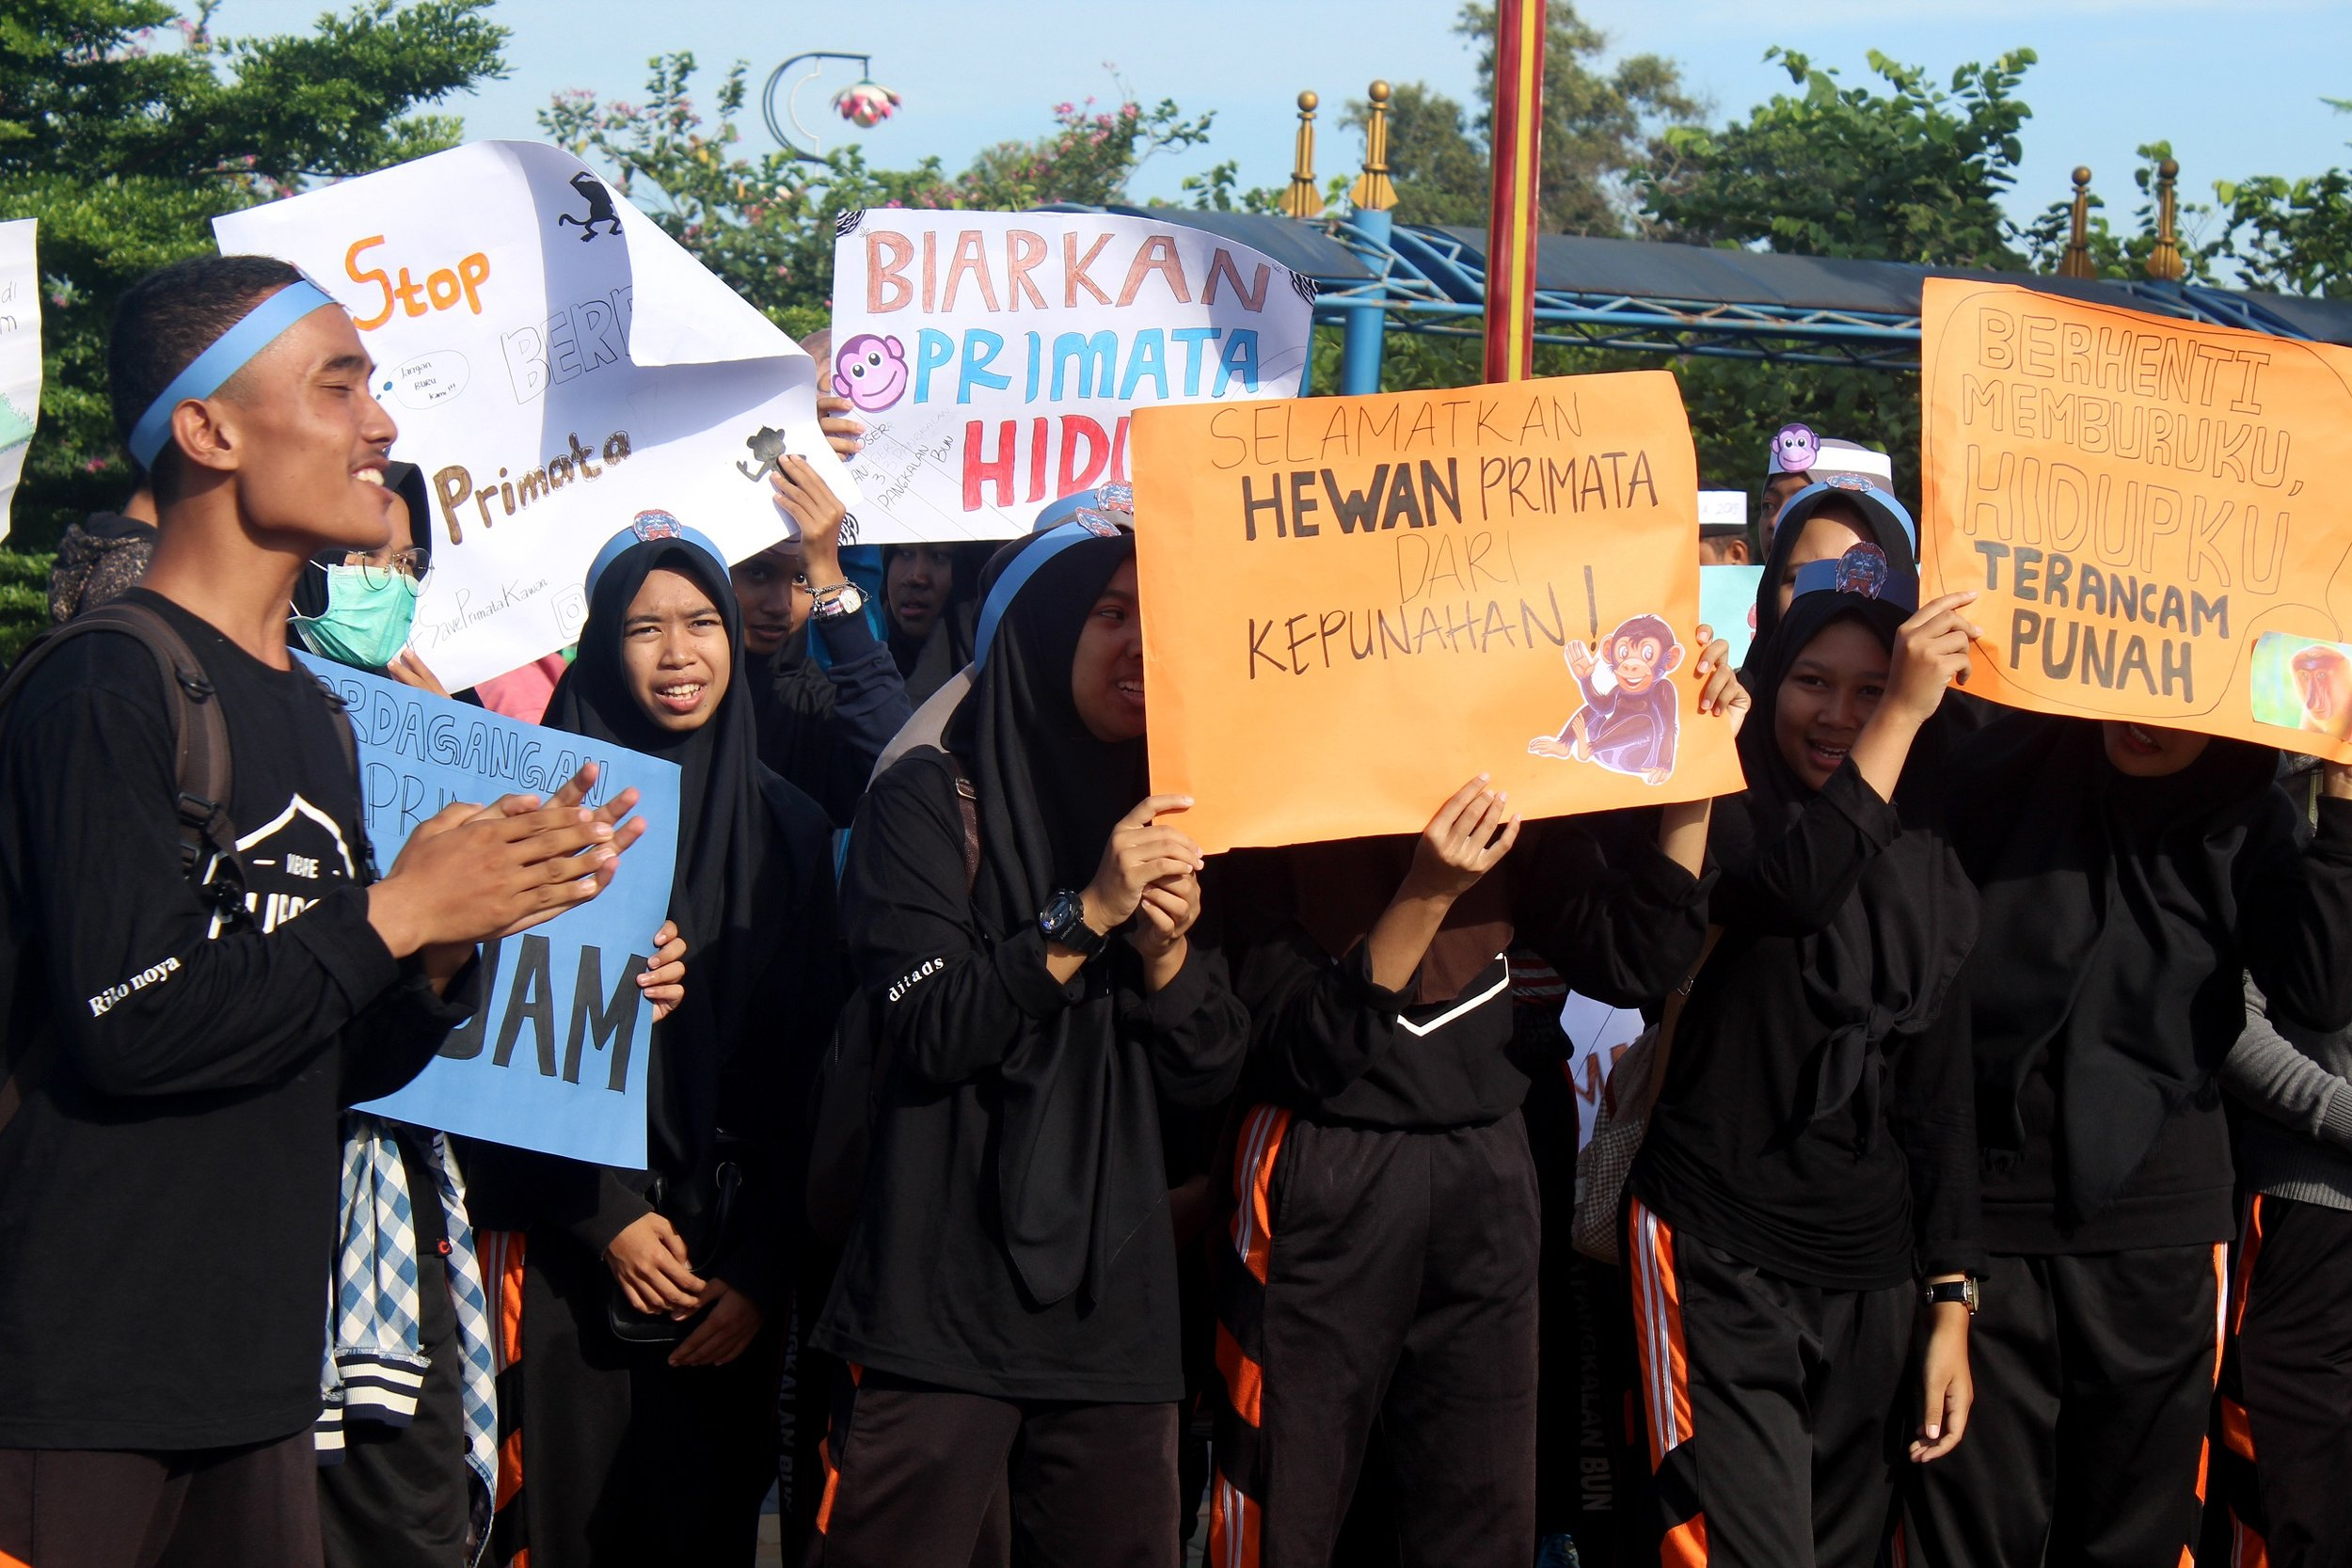 the message was loud and clear - Indonesia's primate species need protection!